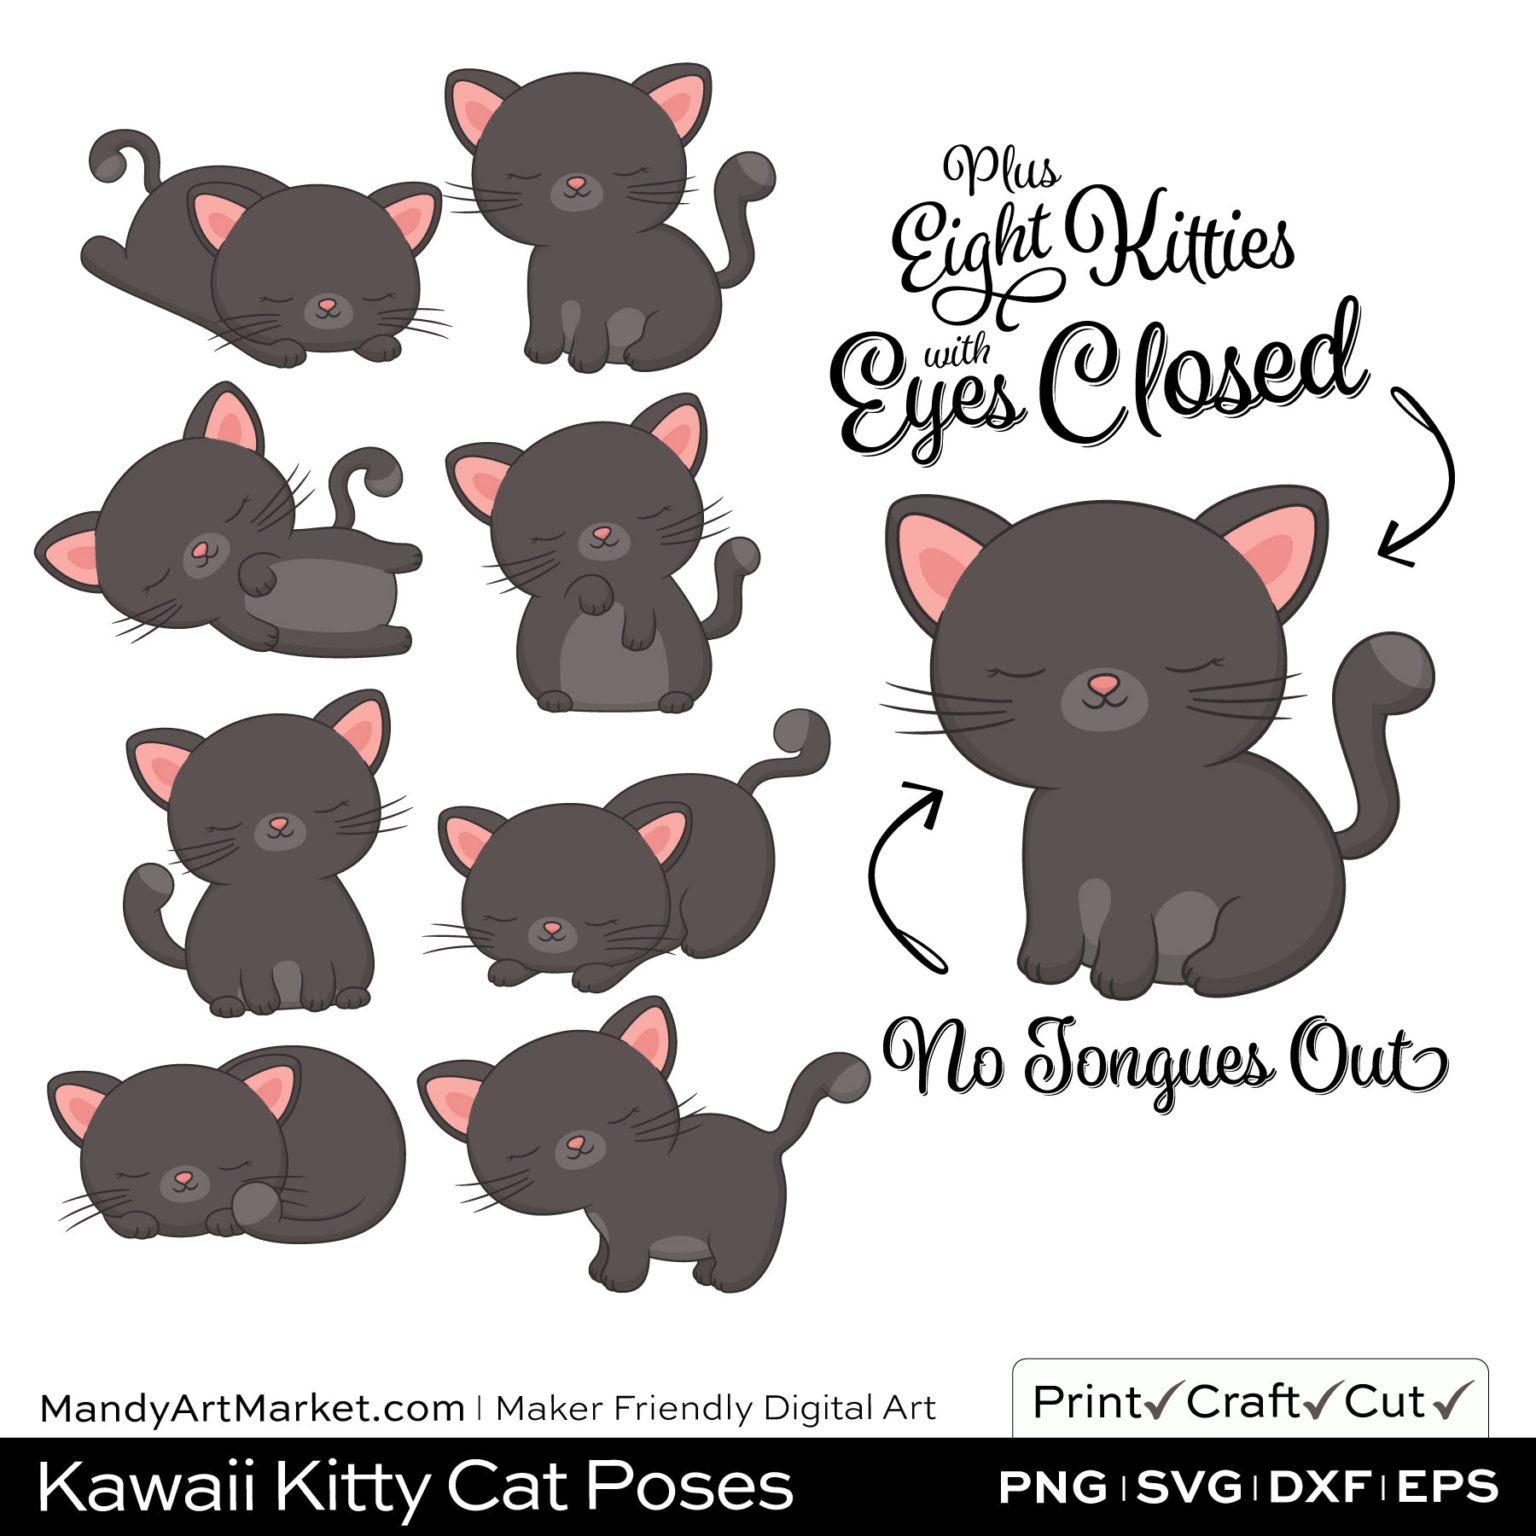 Gunmetal Gray Kawaii Kitty Cat Poses Clipart PNGs Included in Download